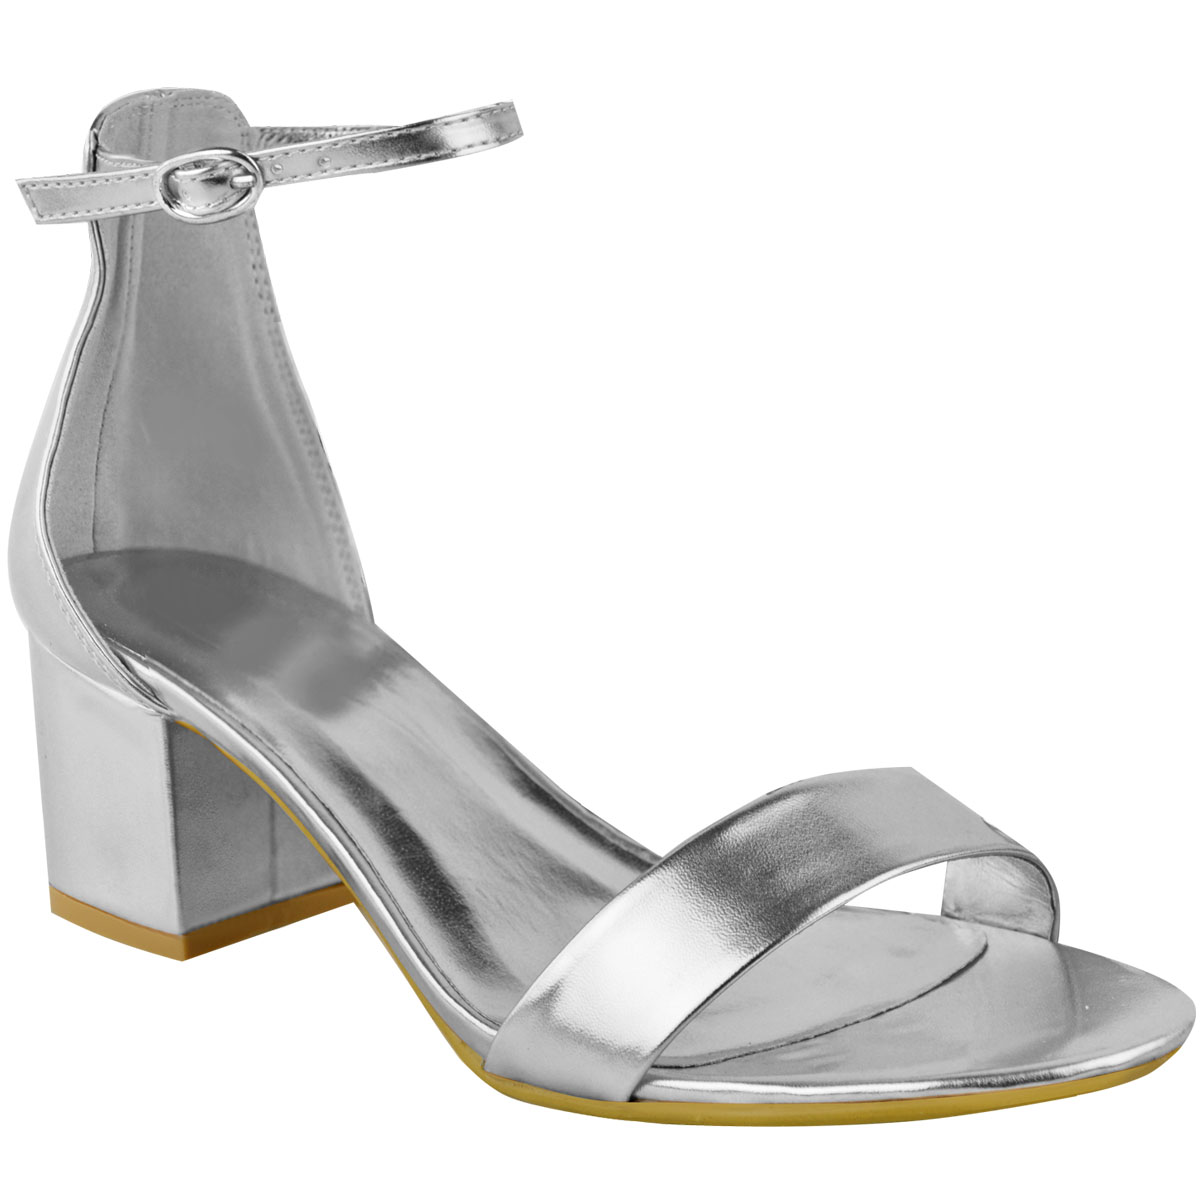 Details about New Womens Ladies Silver Low Block Heel Wedding Sandals Bridal Prom Shoes Size